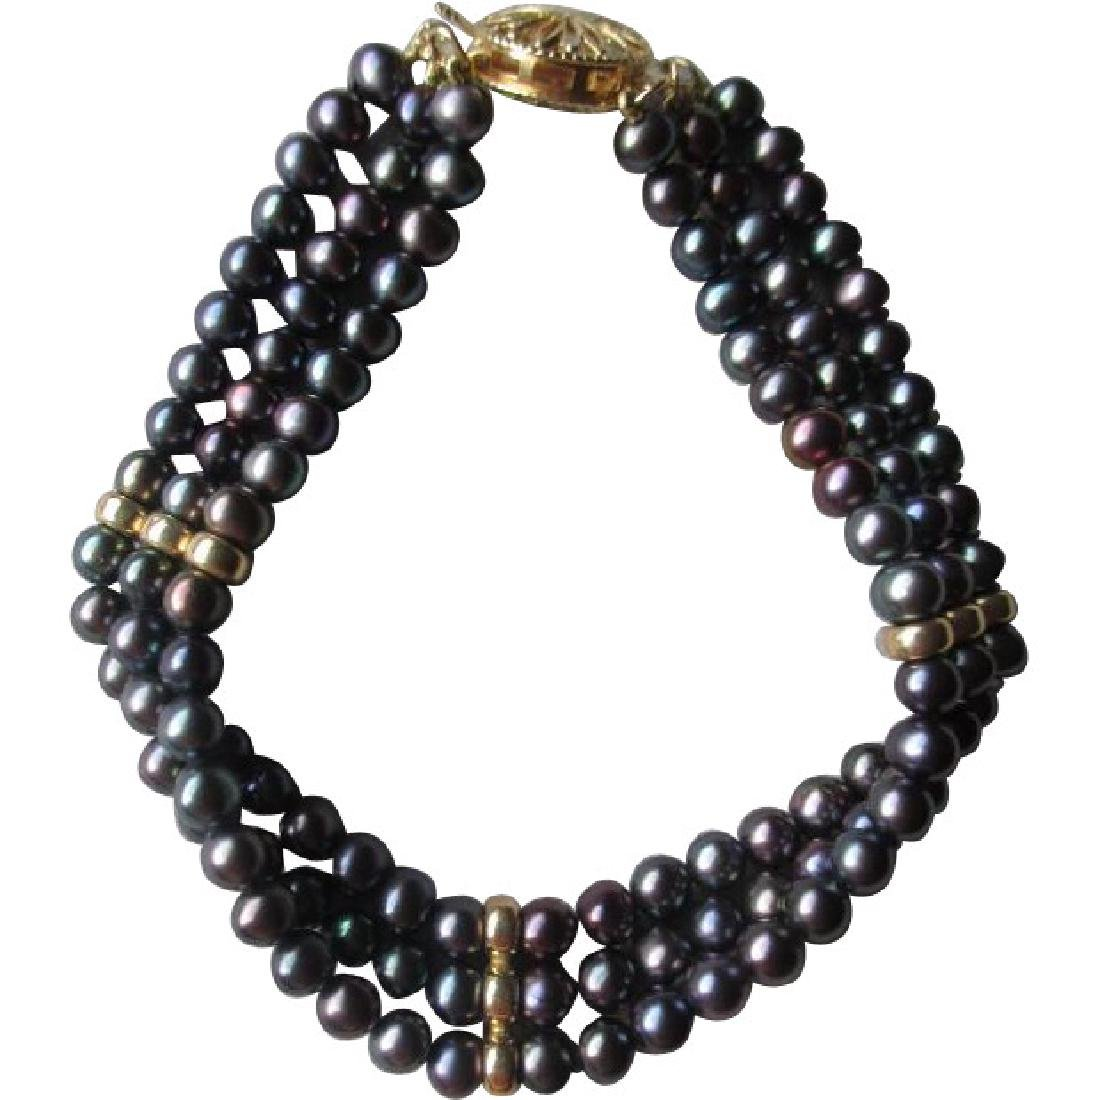 Gorgeous Black Freshwater Pearl Bracelet with 14k Gold